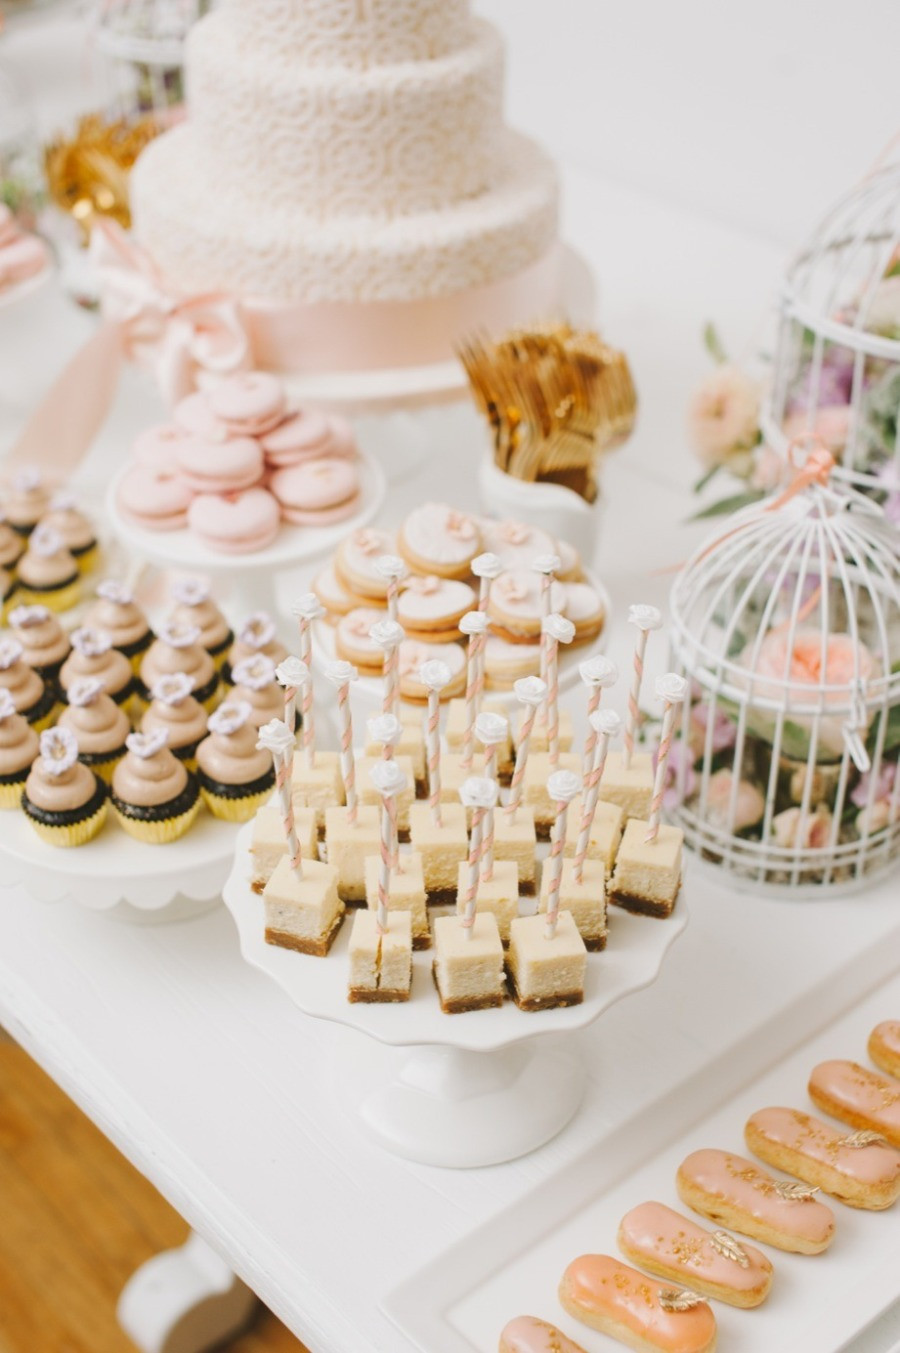 Wedding Dessert Ideas  45 Chic and Creative Wedding Dessert Ideas MODwedding